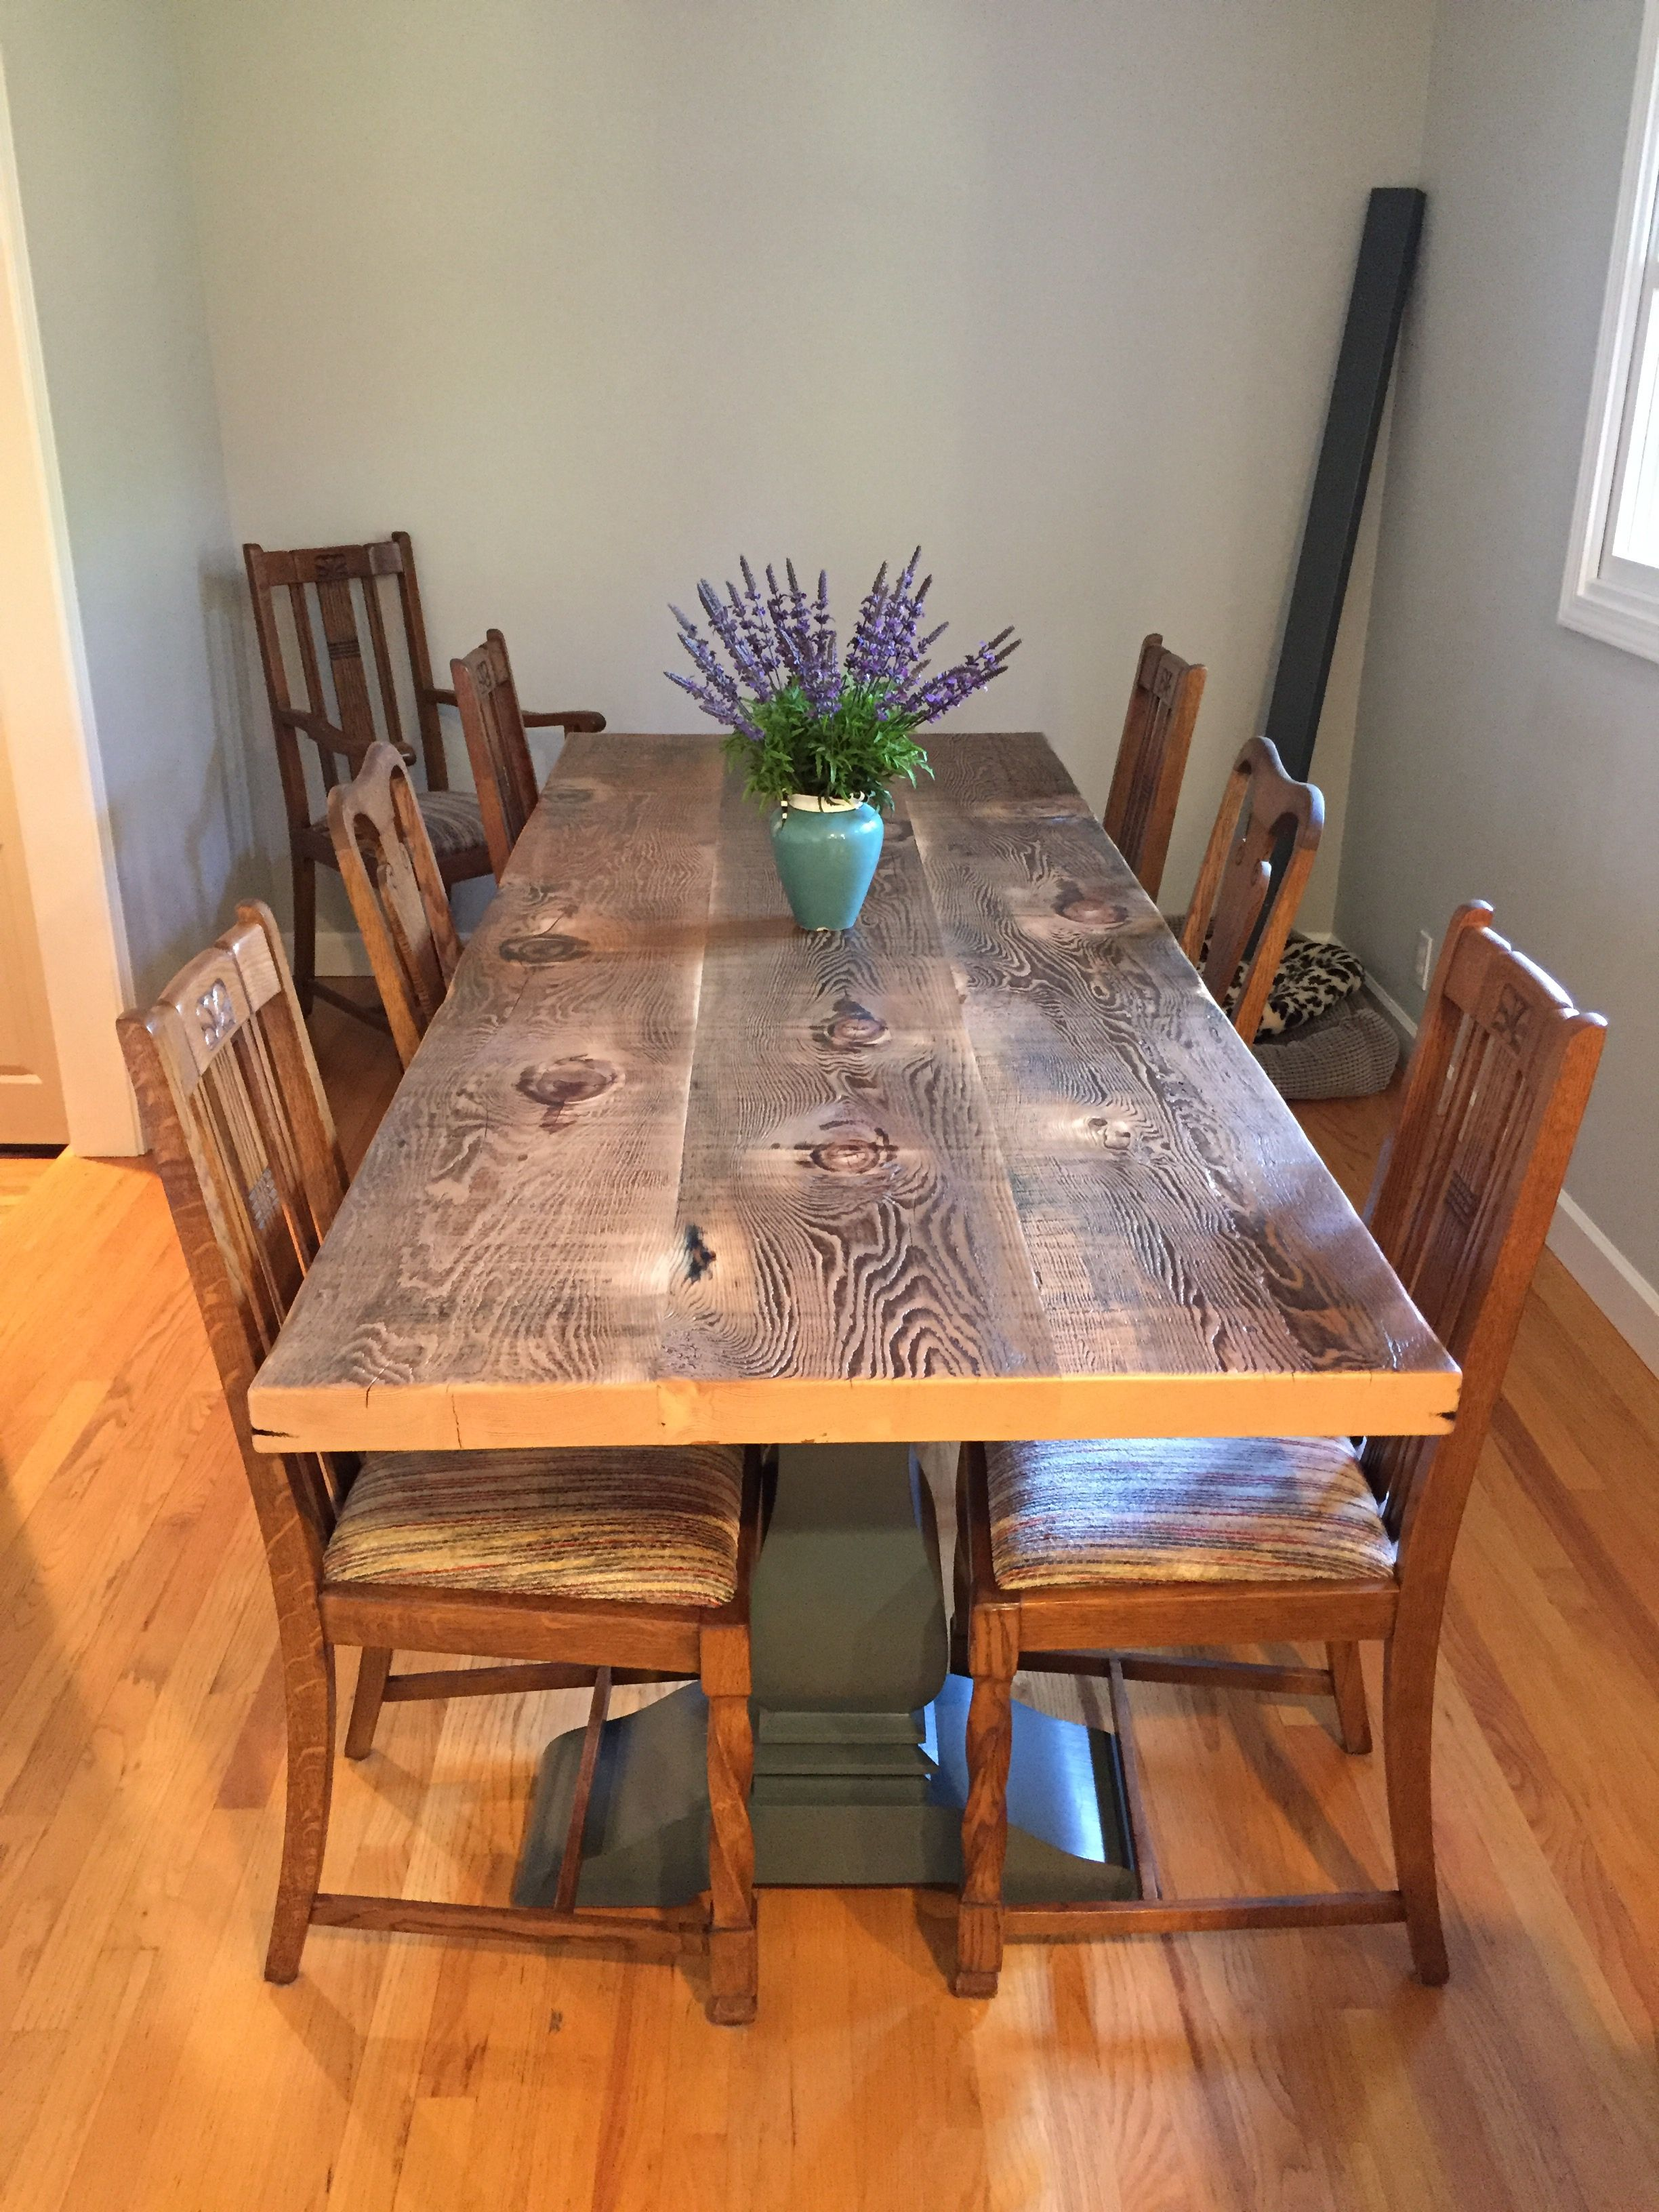 Gorgeous Dining Table Made Out Of Old Joists From The Historic Novato Theater Finished In A Satin Polyurethane And Sitting On Client Provided Base